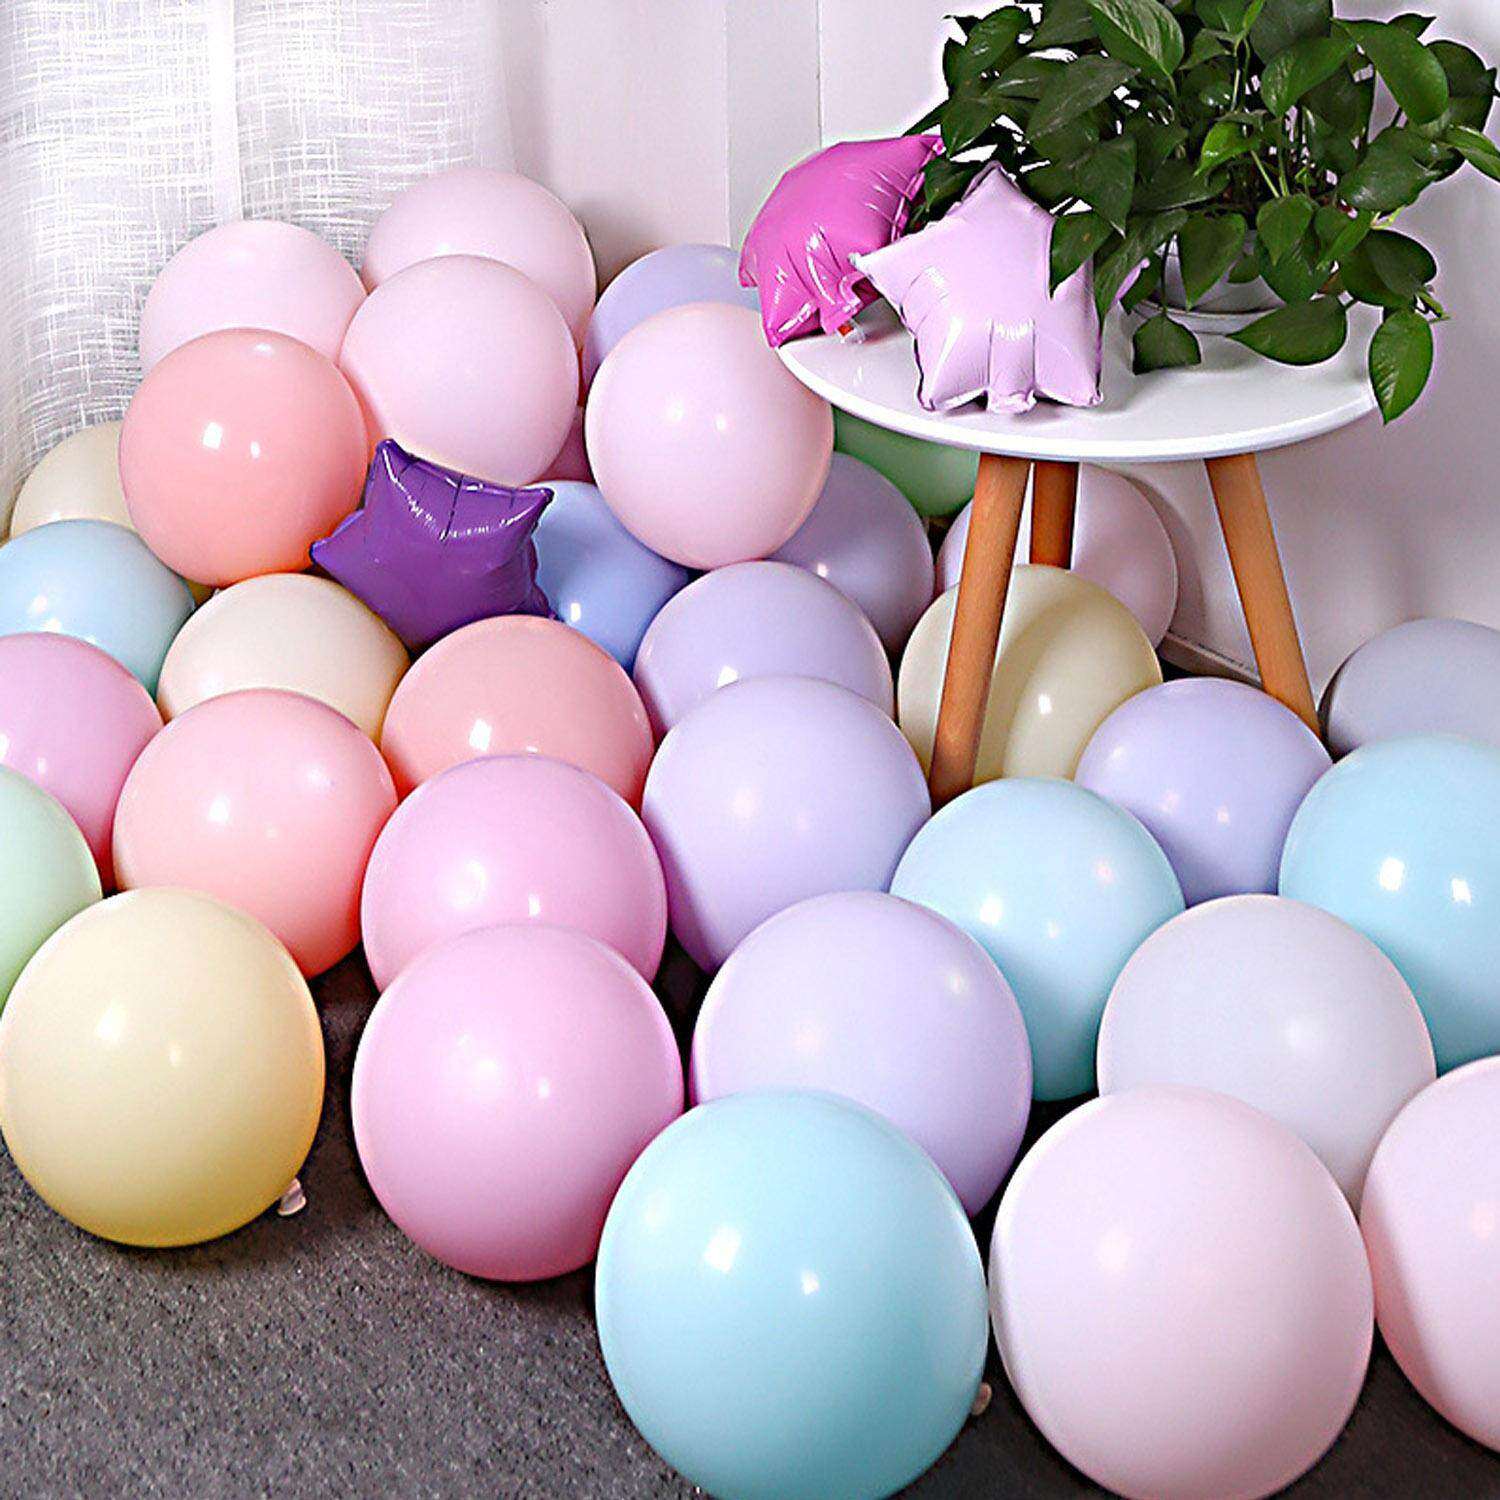 100pcs Vococal 10 Inches Cute Lovely Assorted Macarons Candy Colored Latex Party Balloons For Wedding Graduation